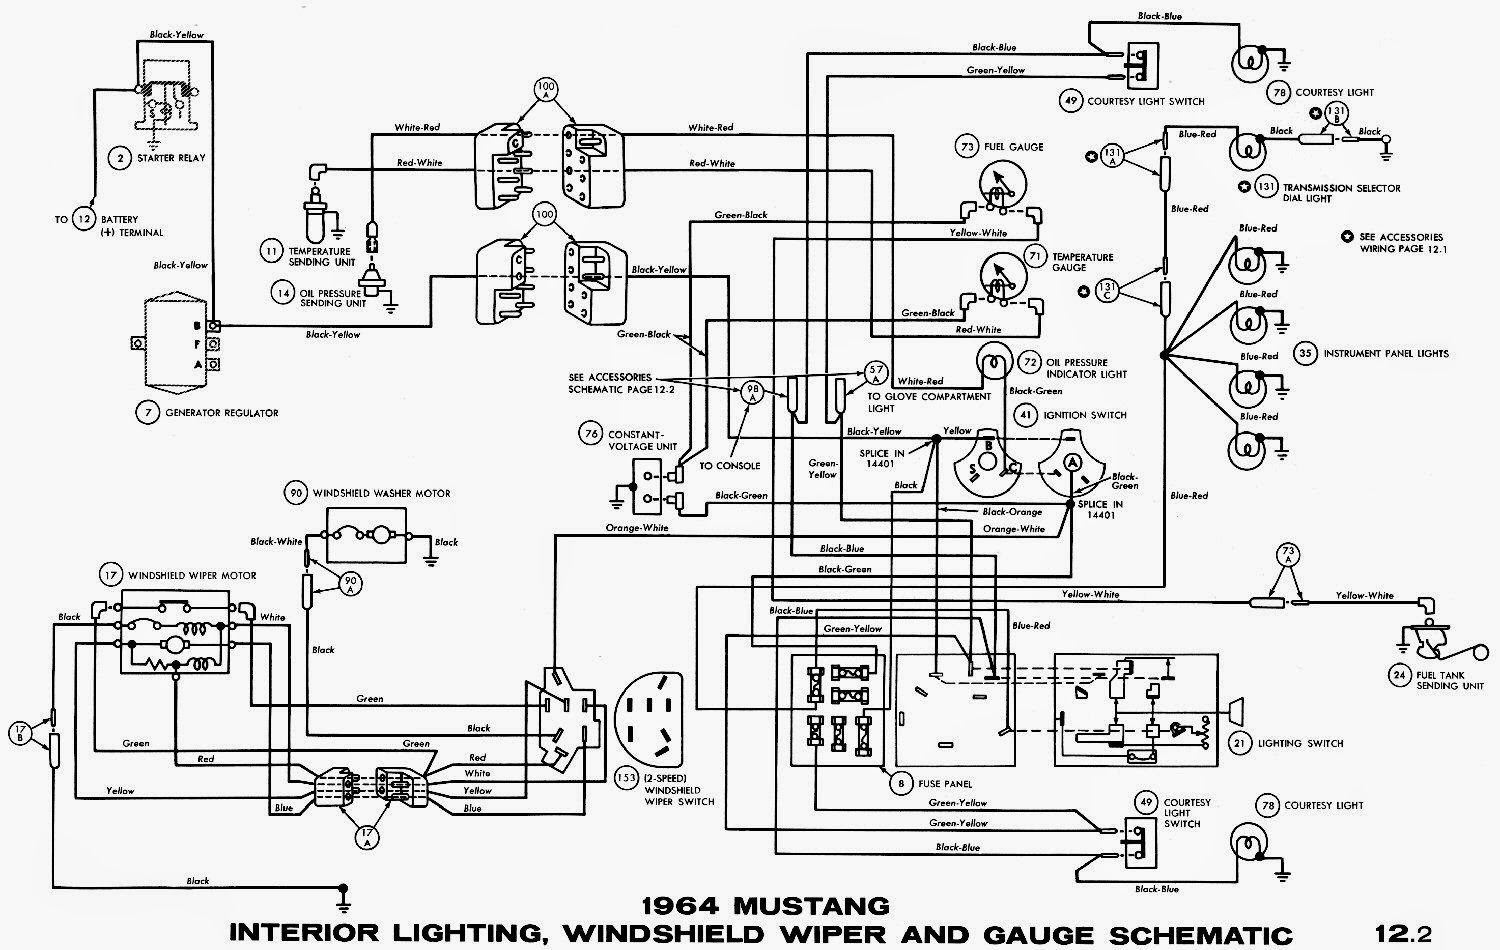 1976 mustang wiring diagram 1976 mustang 2wire diagram